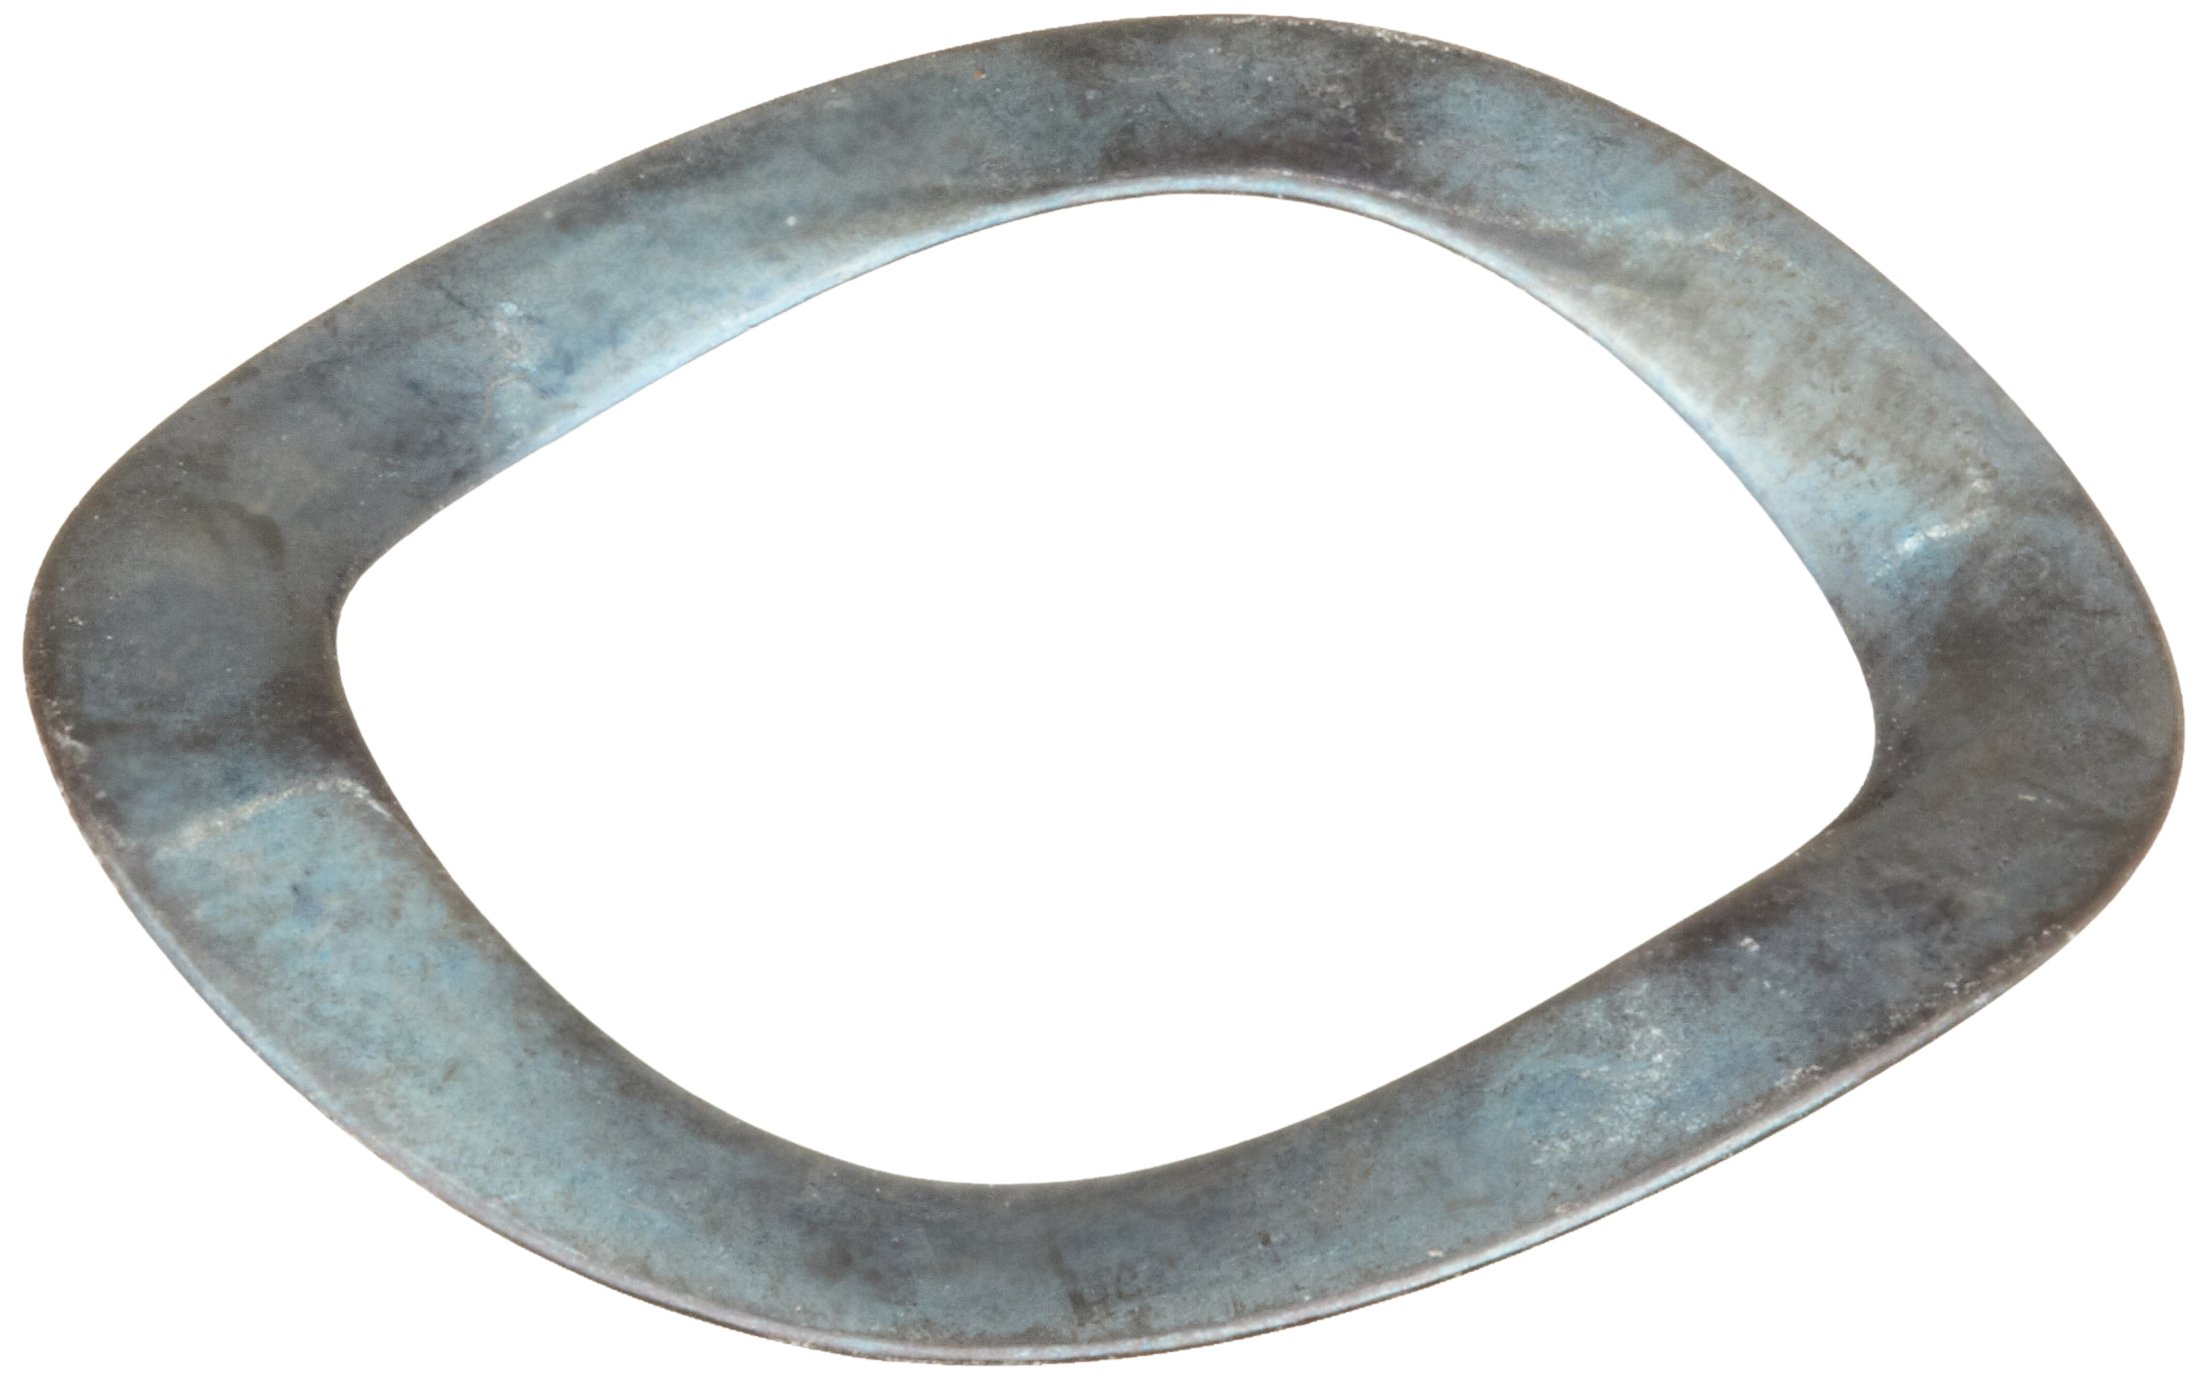 Compression Type Wave Washer, Carbon Steel, 3 Waves, Inch, 0.52'' ID, 0.74'' OD, 0.008'' Thick, 0.748'' Bearing OD, 364lbs/in Spring Rate, 55.1lbs Load, (Pack of 10)